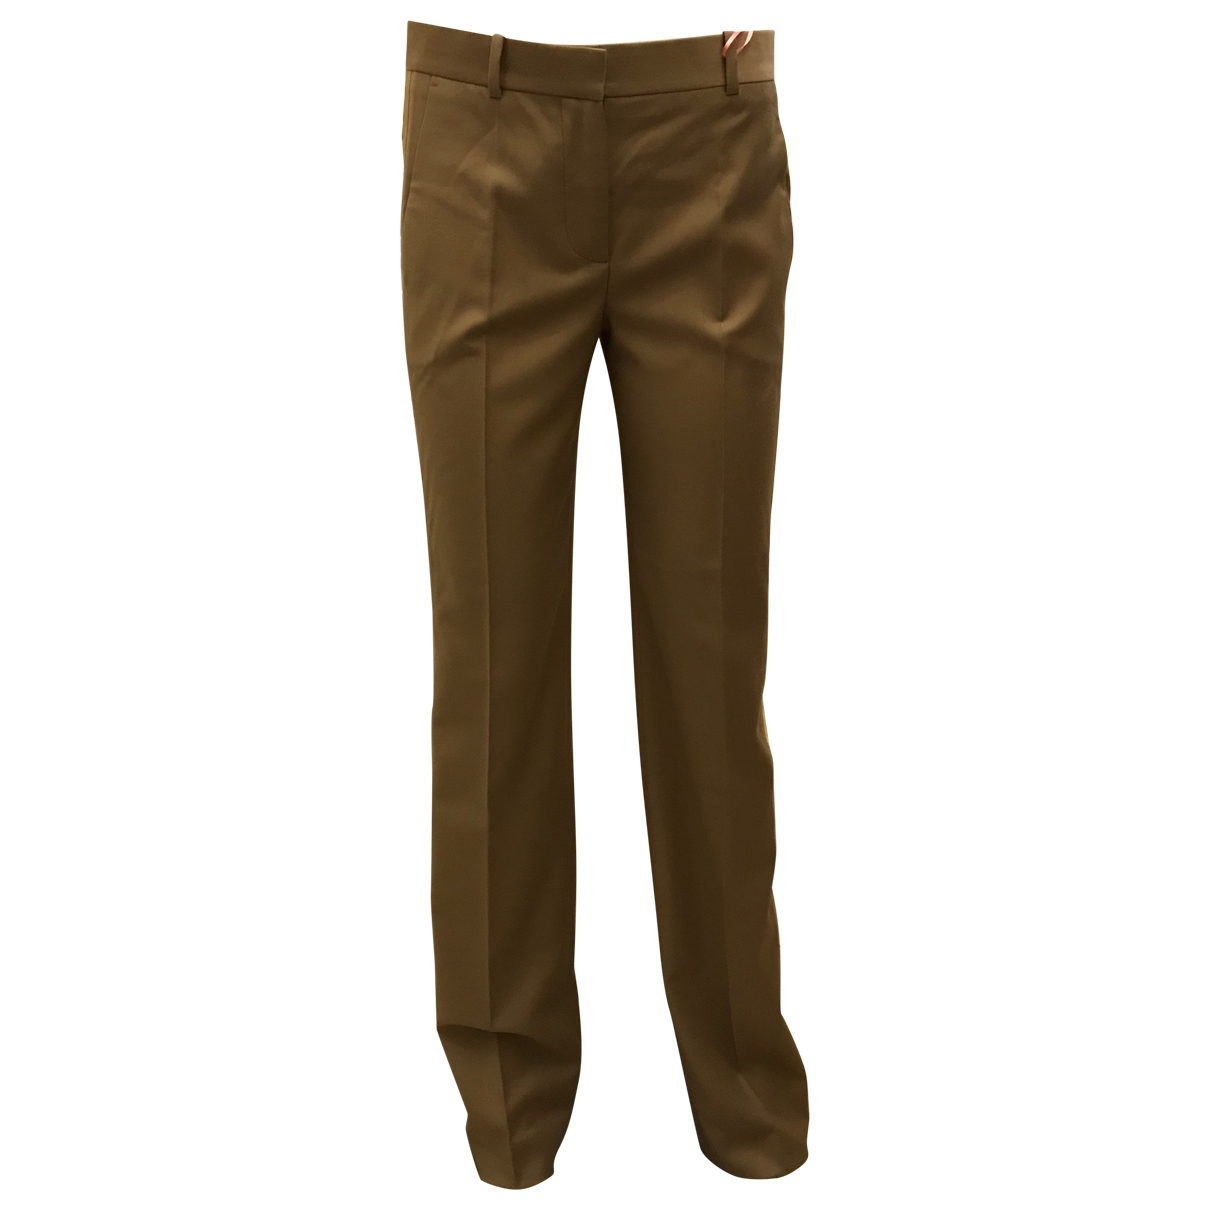 Givenchy \N Beige Wool Trousers for Women 36 FR